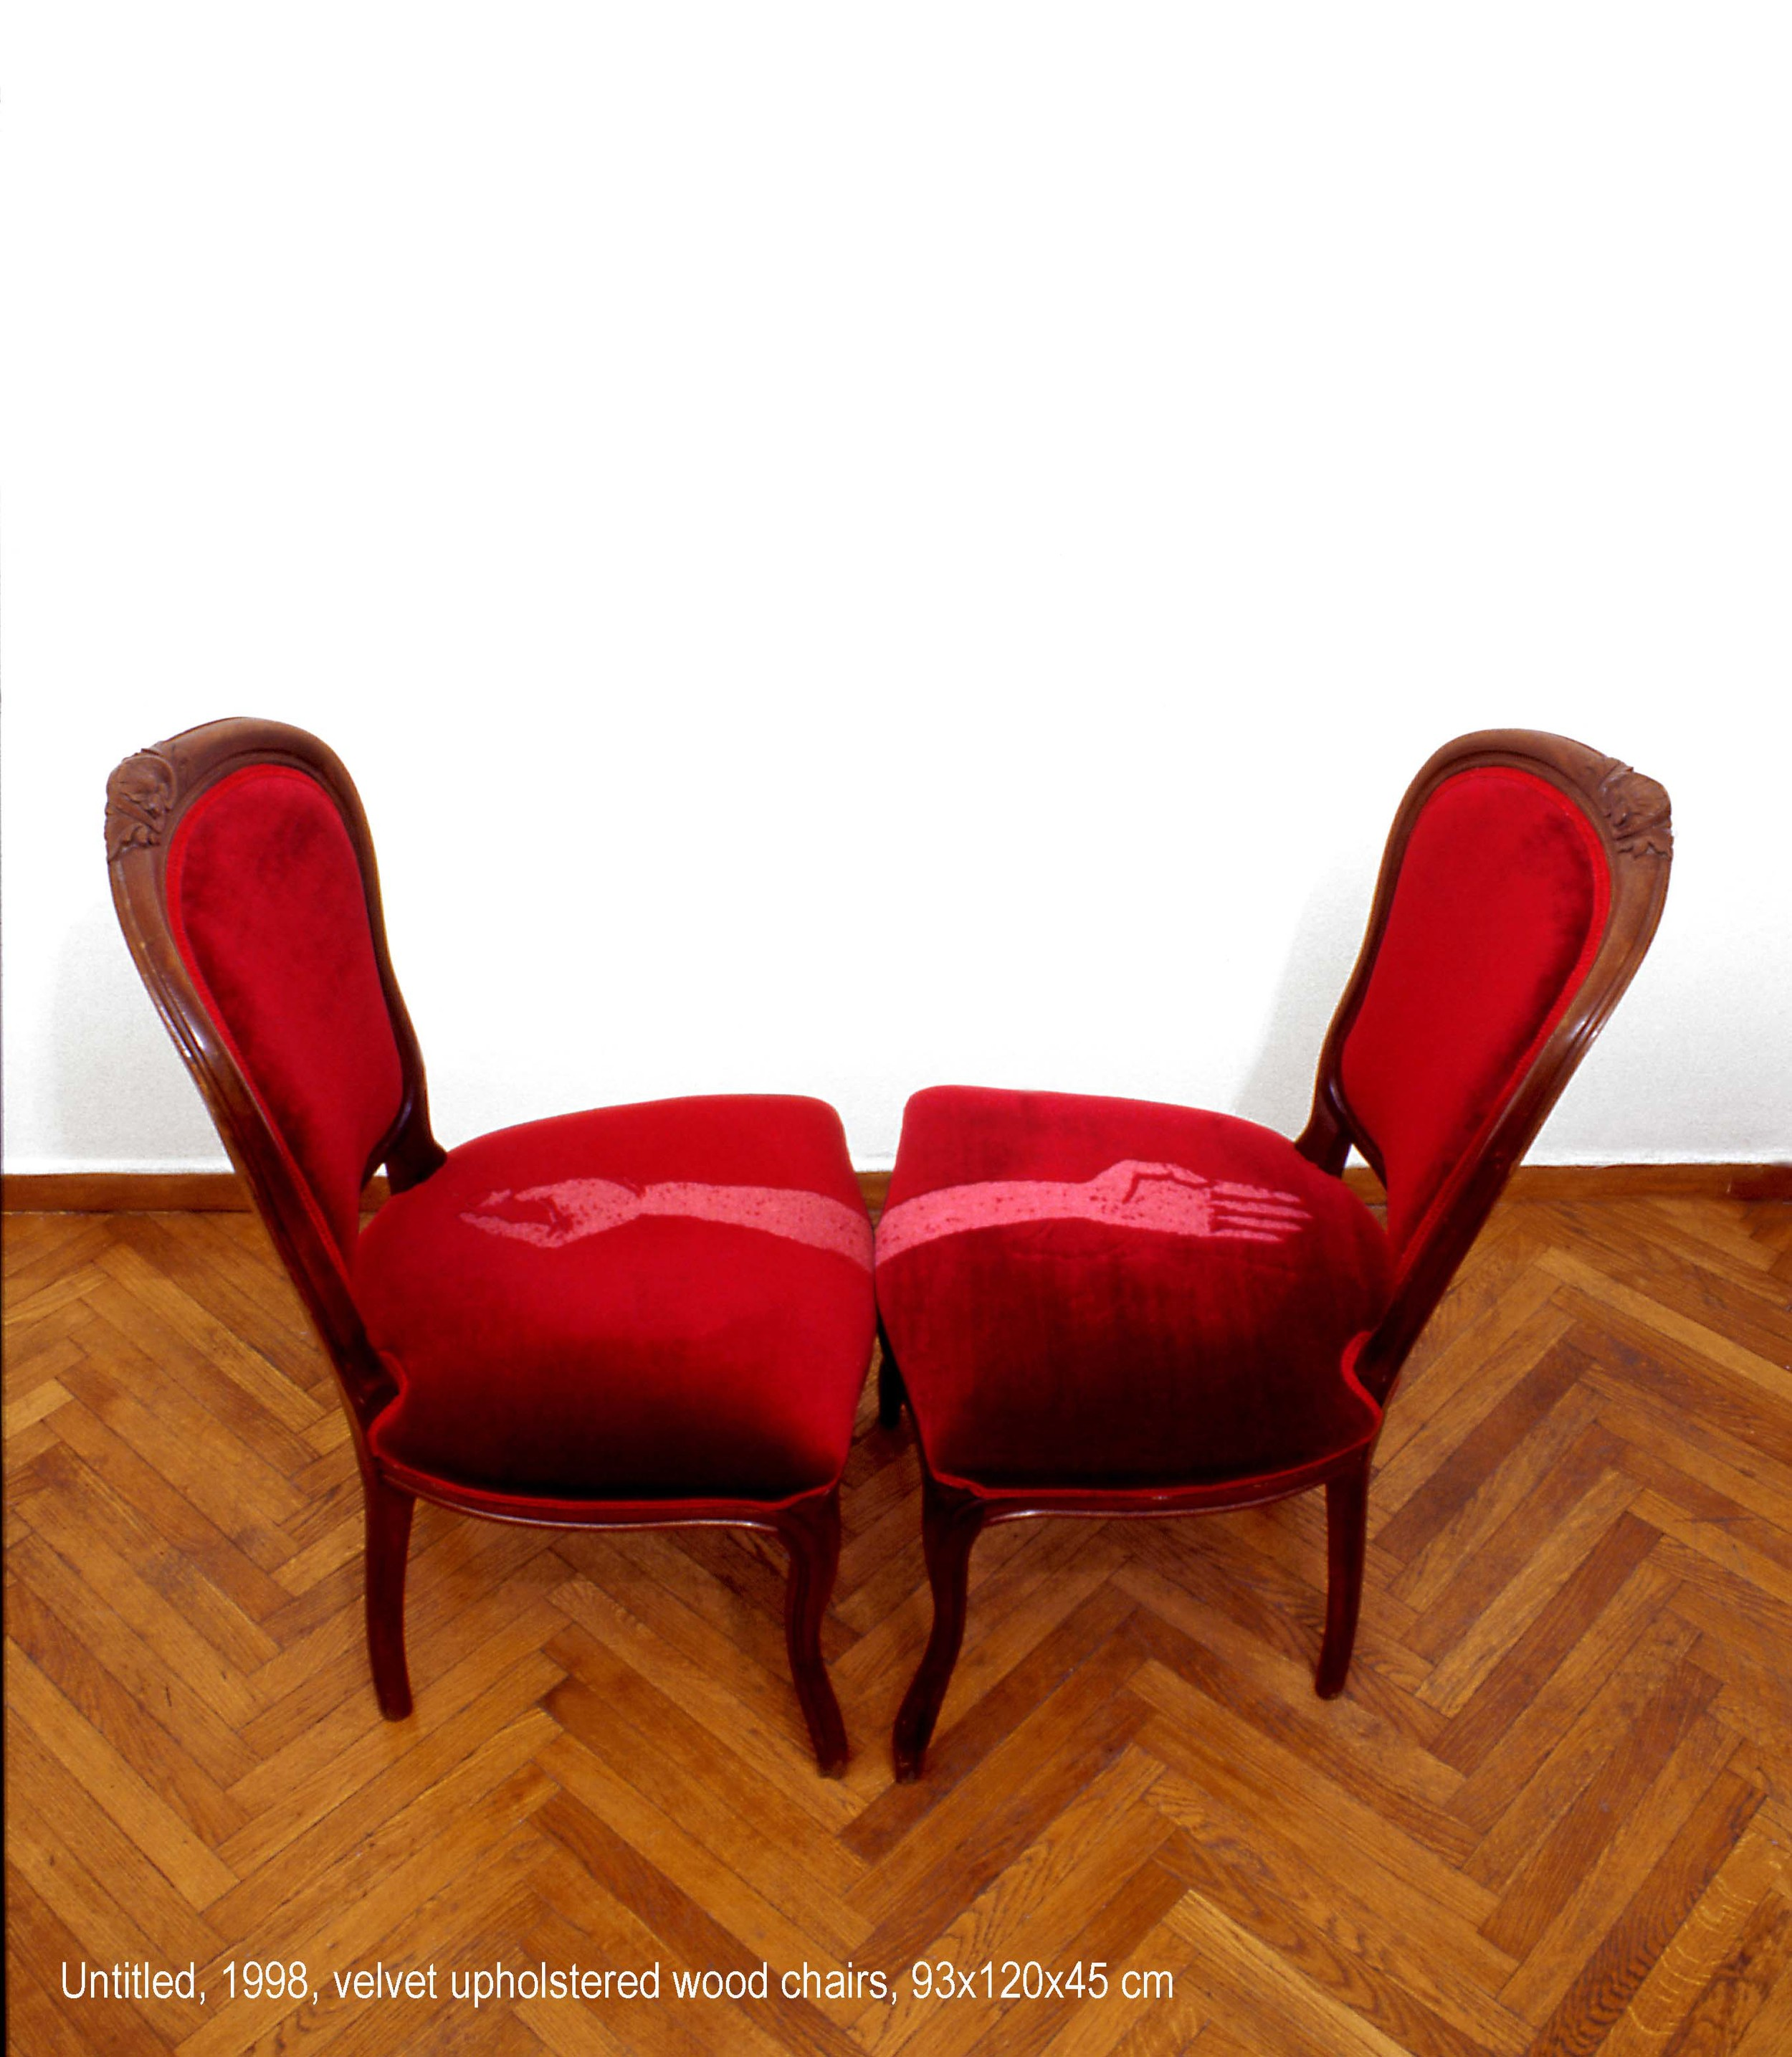 Maro Michalakakos   Untitled   1998  Velvet upholstered wood chairs  93x120x45cm